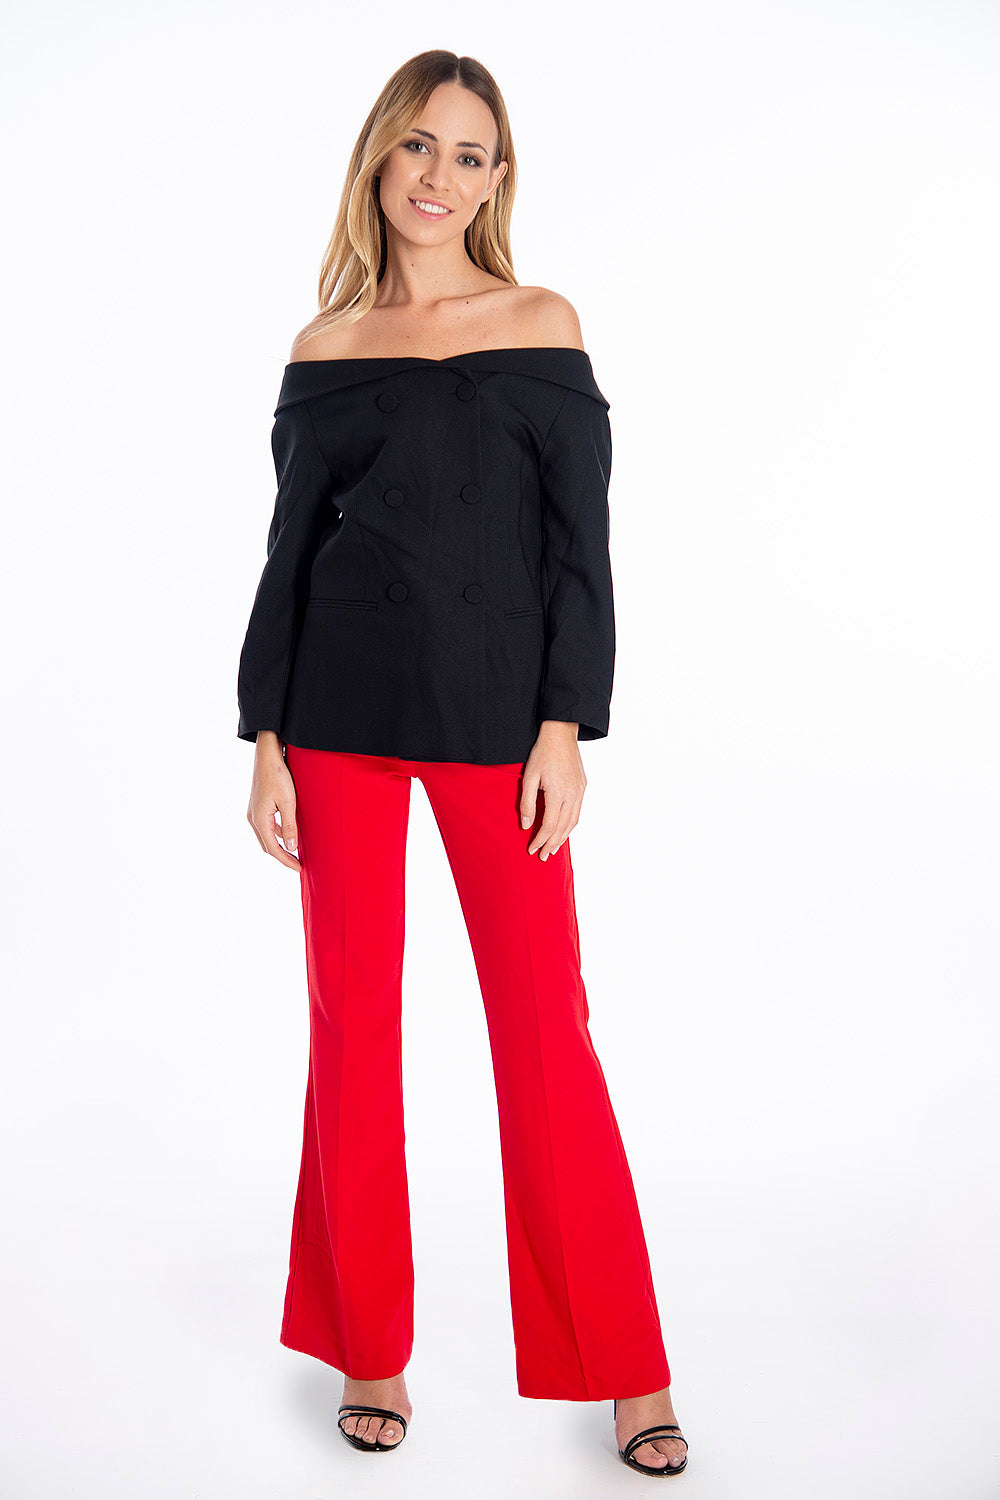 NúNu flare suit trousers with crease